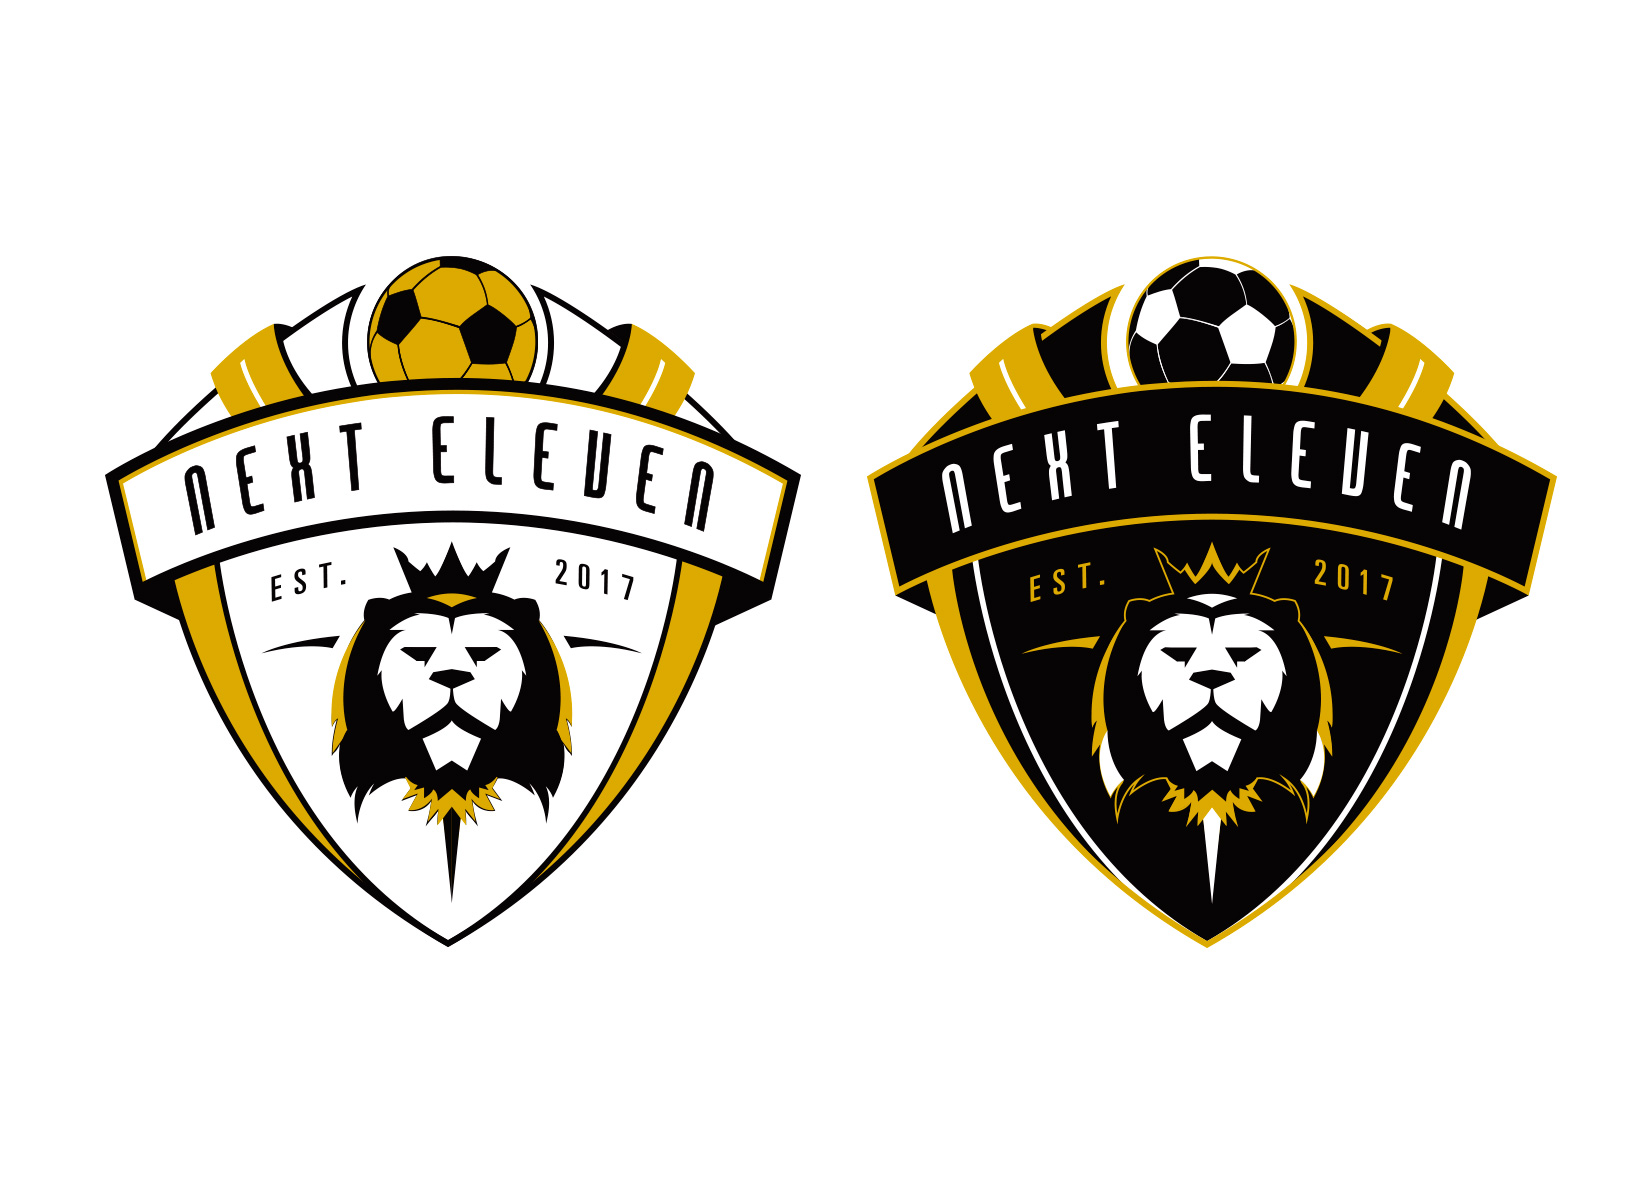 custom-sports-logo-design-by-jordan-fretz-for-romanian-soccer-next-eleven-concept-2.jpg